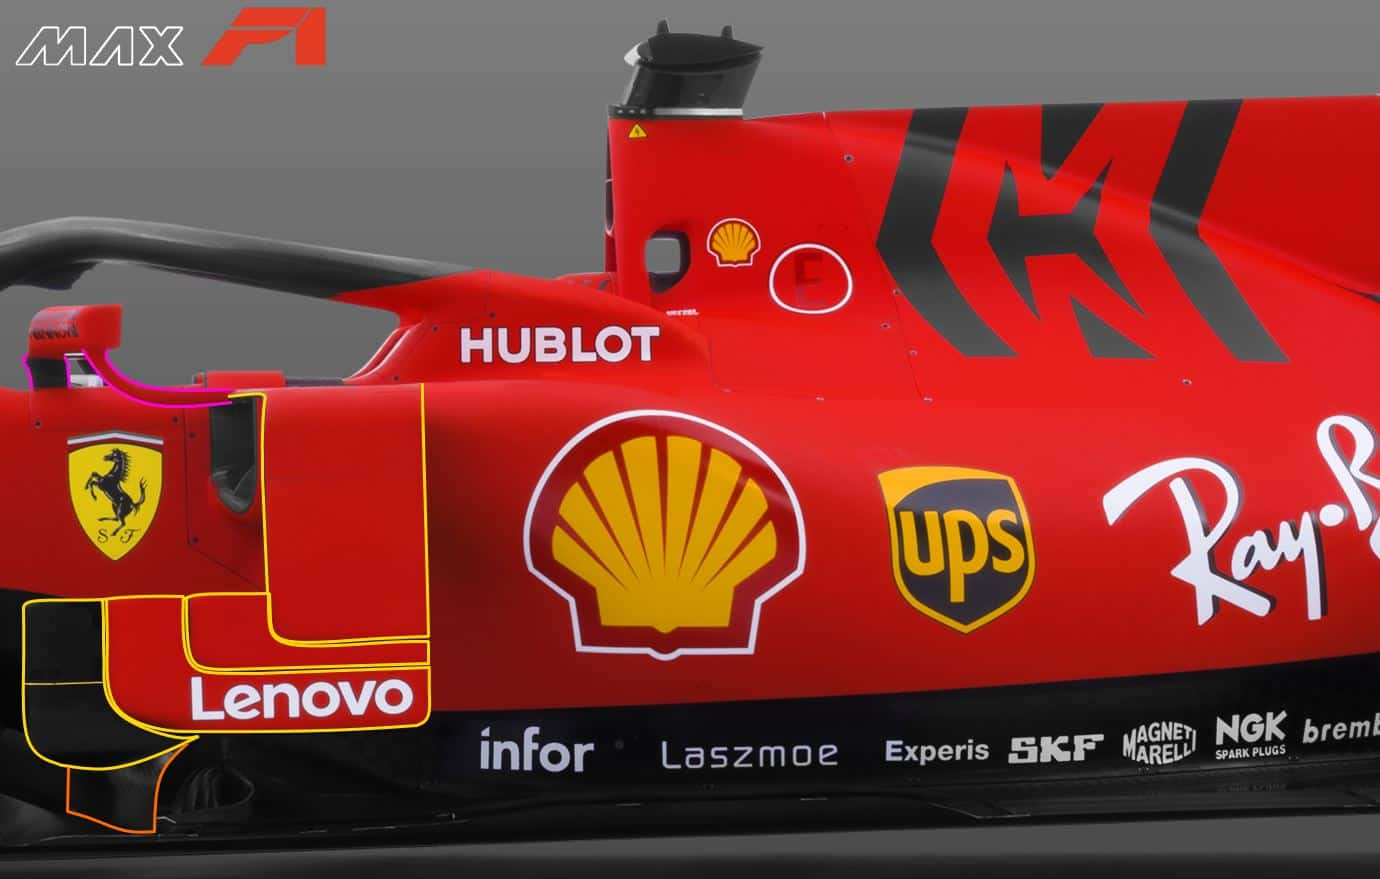 2019 F1 Ferrari SF90 bargeboards vanes sidepod vanes mirrors side view Photo Ferrari Edited by MAXF1net